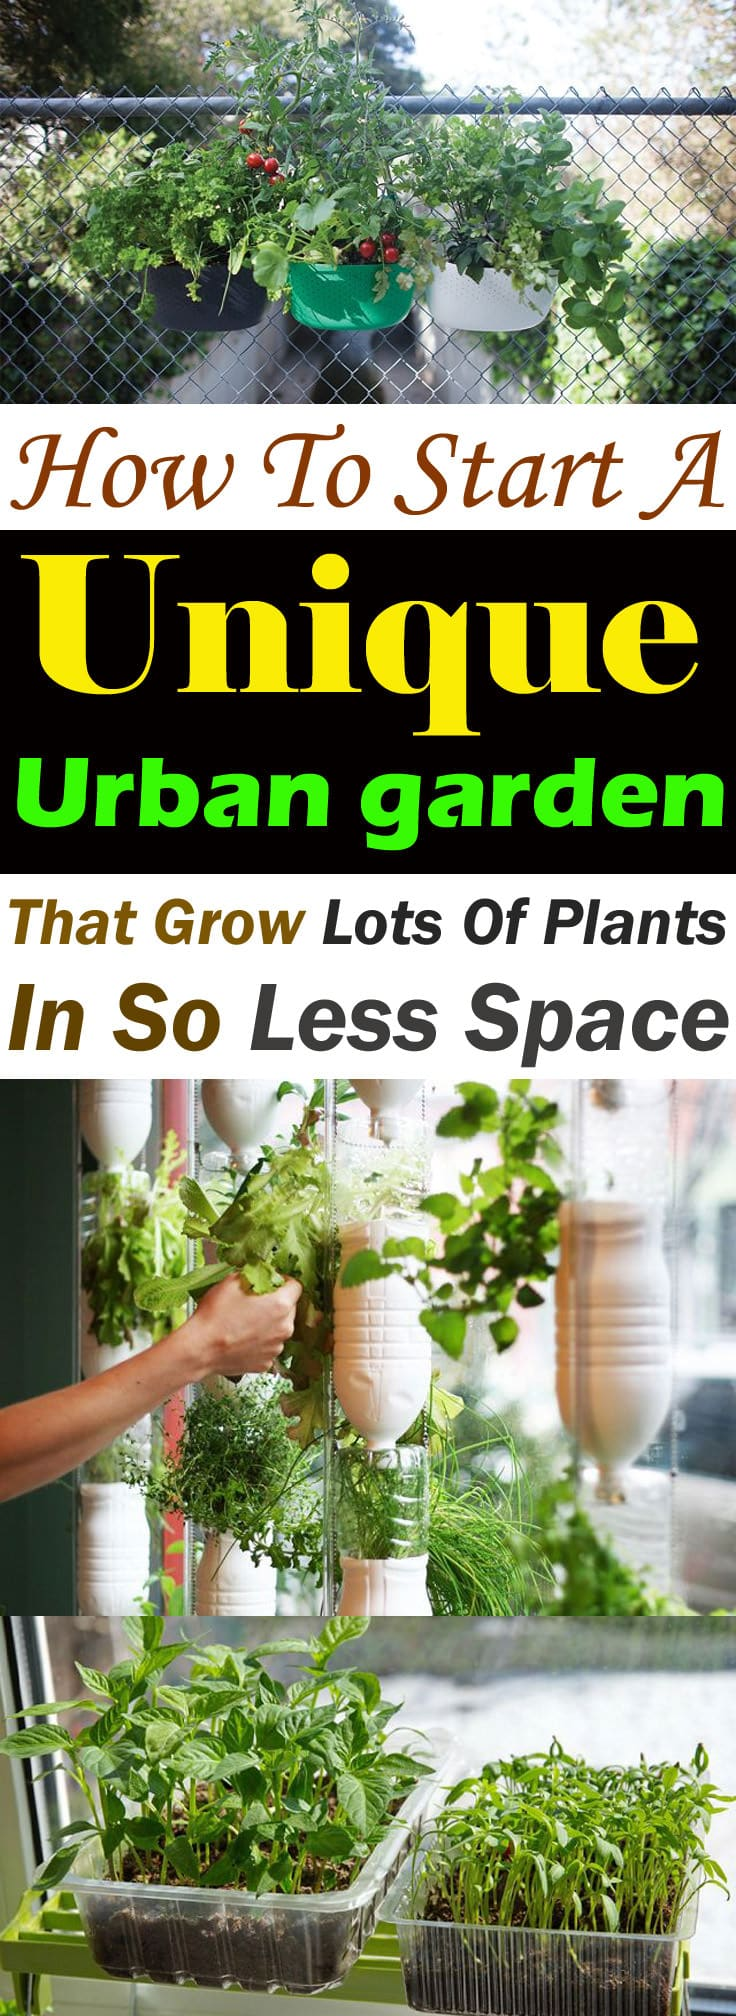 To Start An Urban Garden, You Need The Right Tools, Ideas, And Some